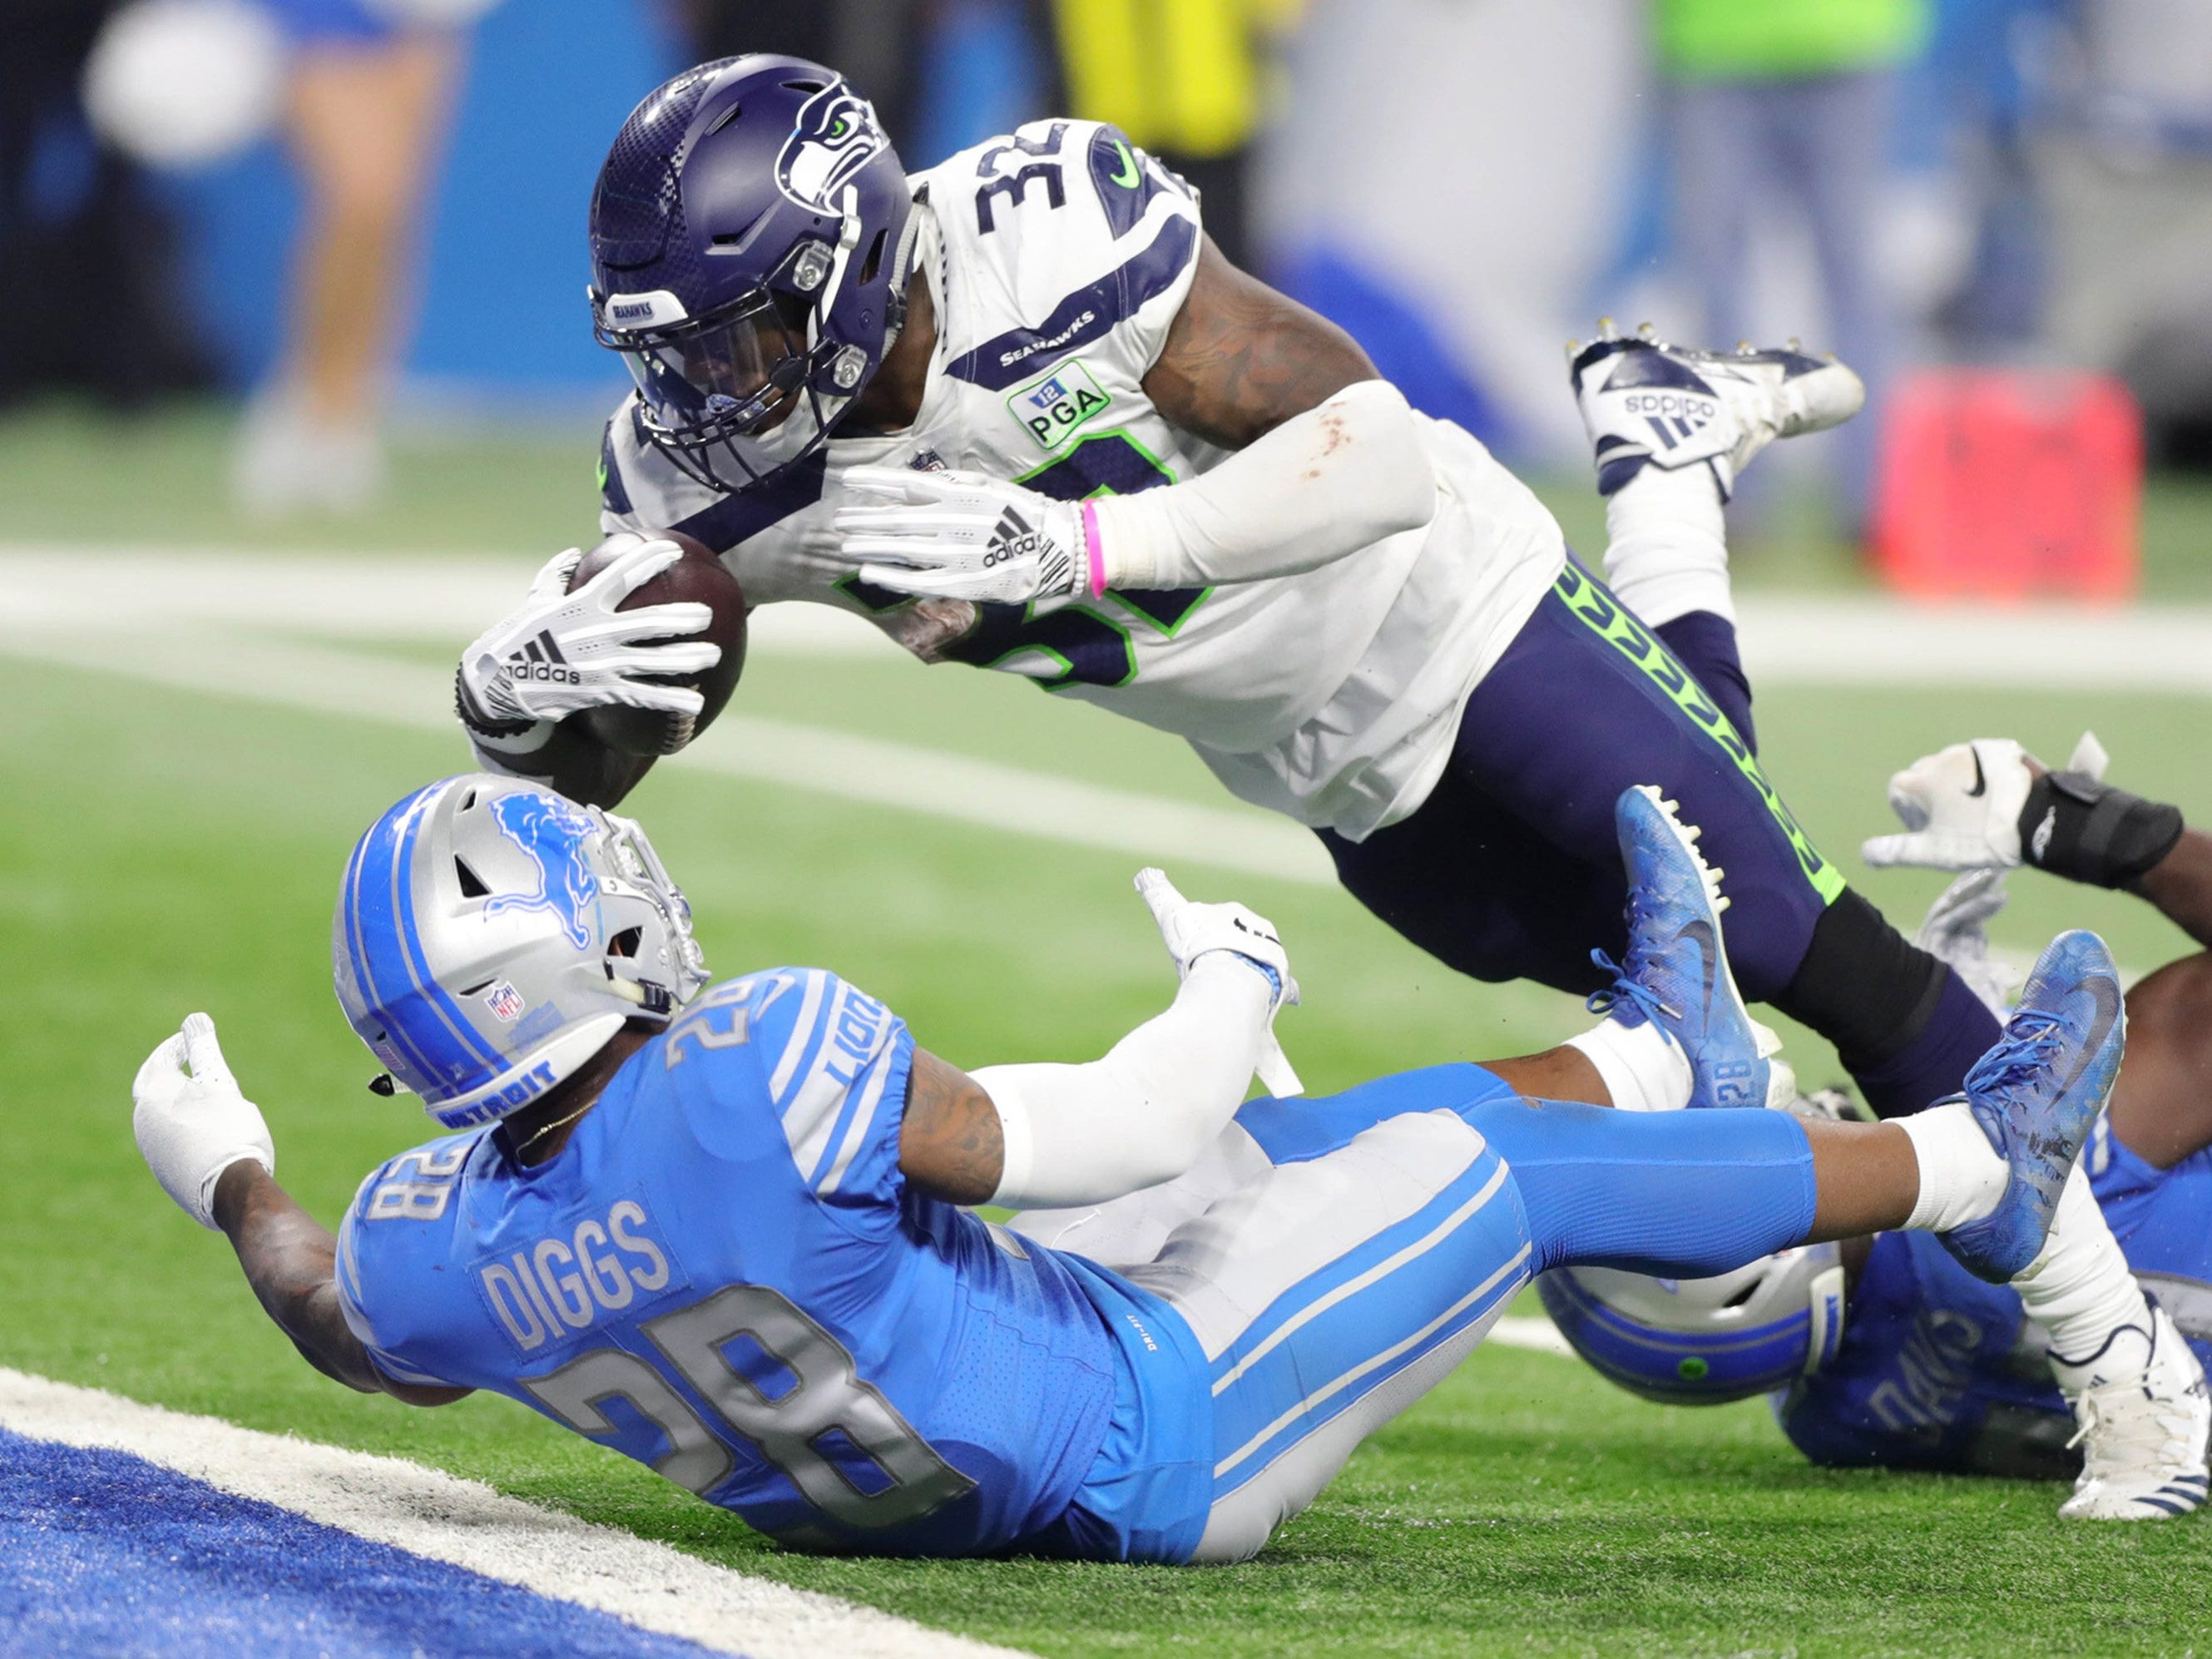 Lions safety Quandre Diggs, left, and linebacker Jarrad Davis give up a touchdown to Seahawks running back Chris Carson during the fourth quarter of the Lions' 28-14 loss on Sunday, Oct. 28, 2018, at Ford Field.